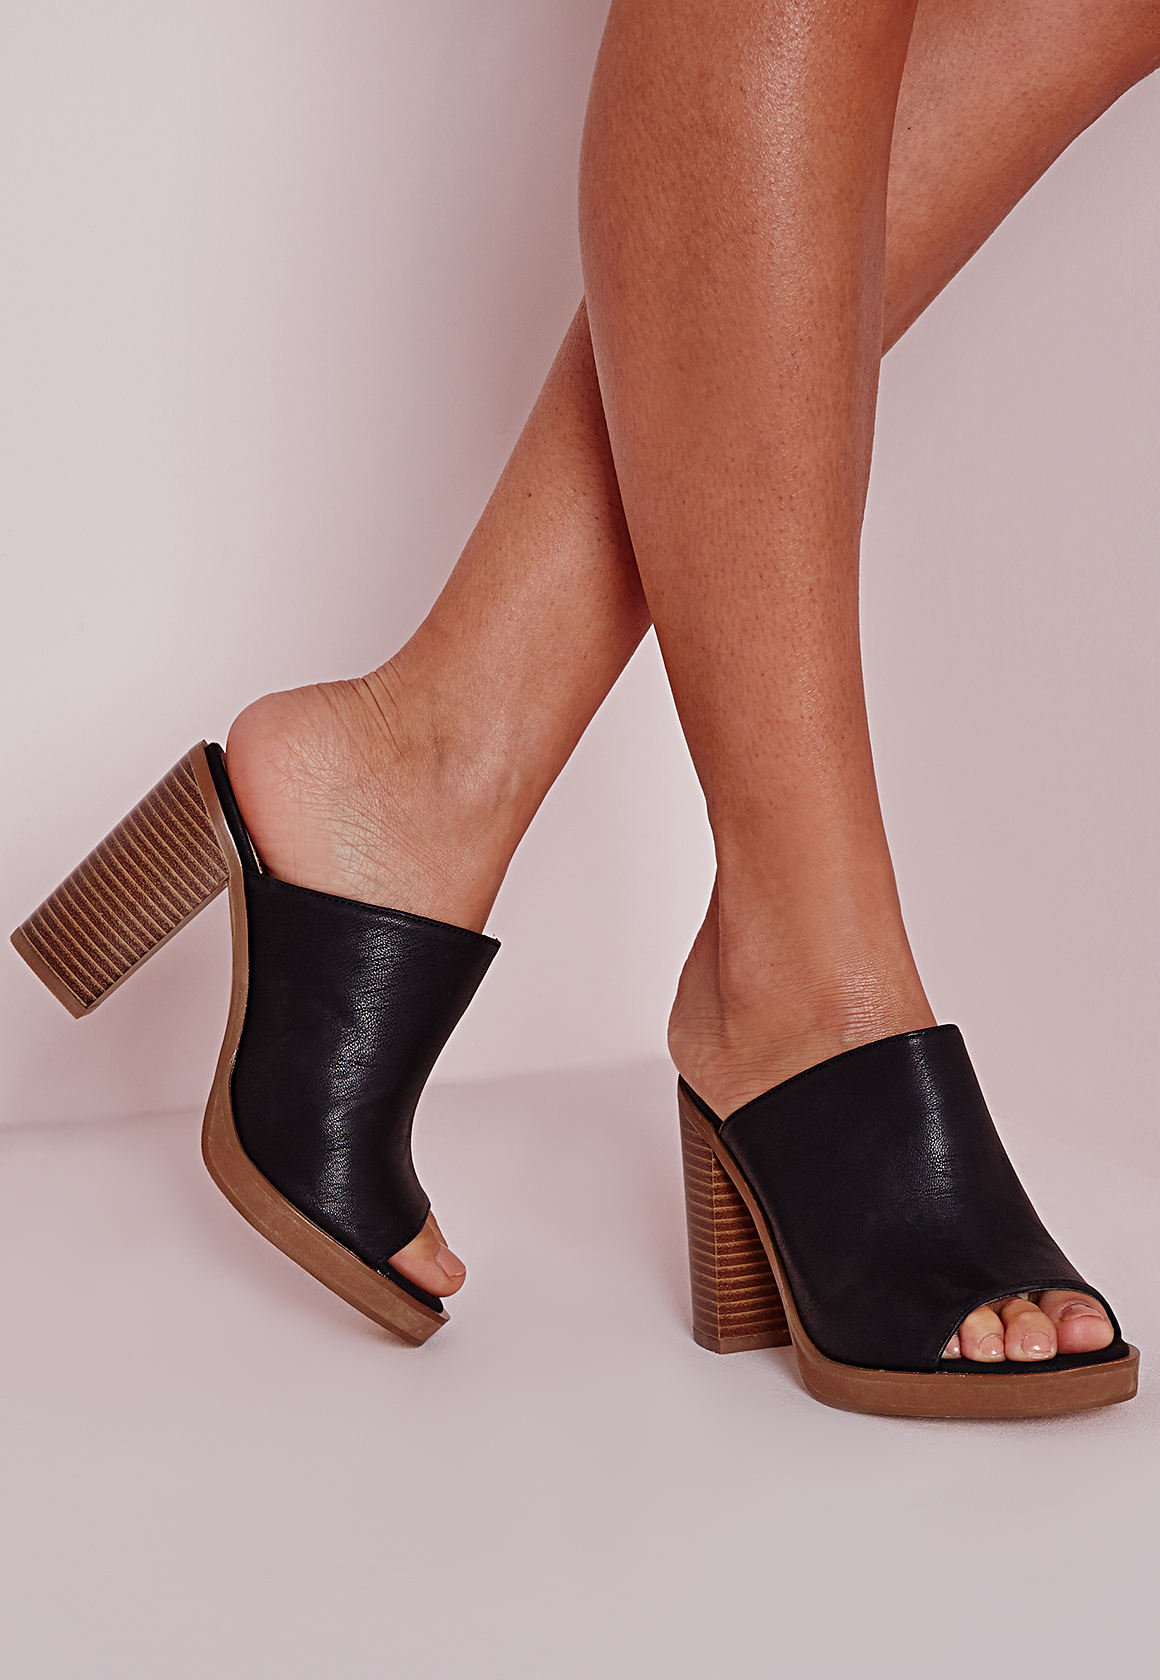 Black Patent Mule Shoes